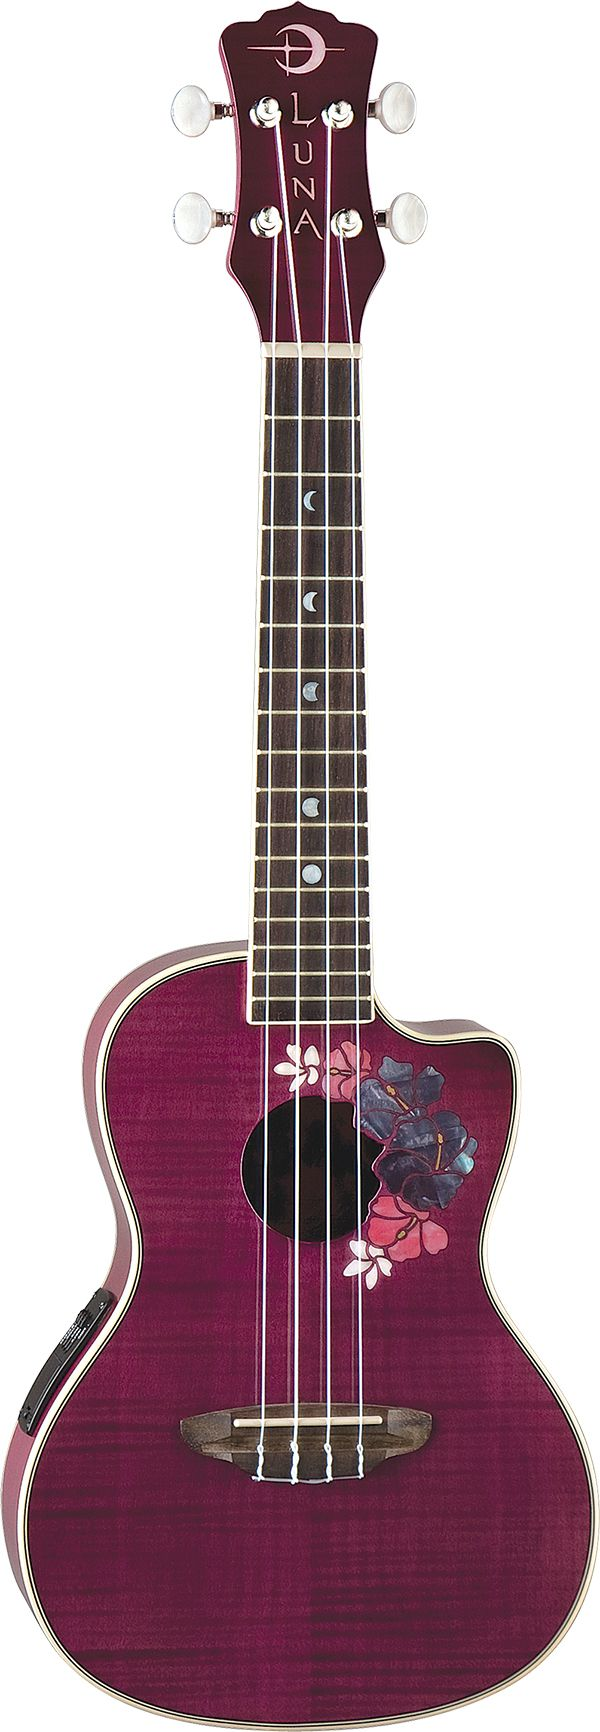 Luna Floral Uke For the Love of Luna Guitars... #lunapinandwin #lunatribe #lunaguitars